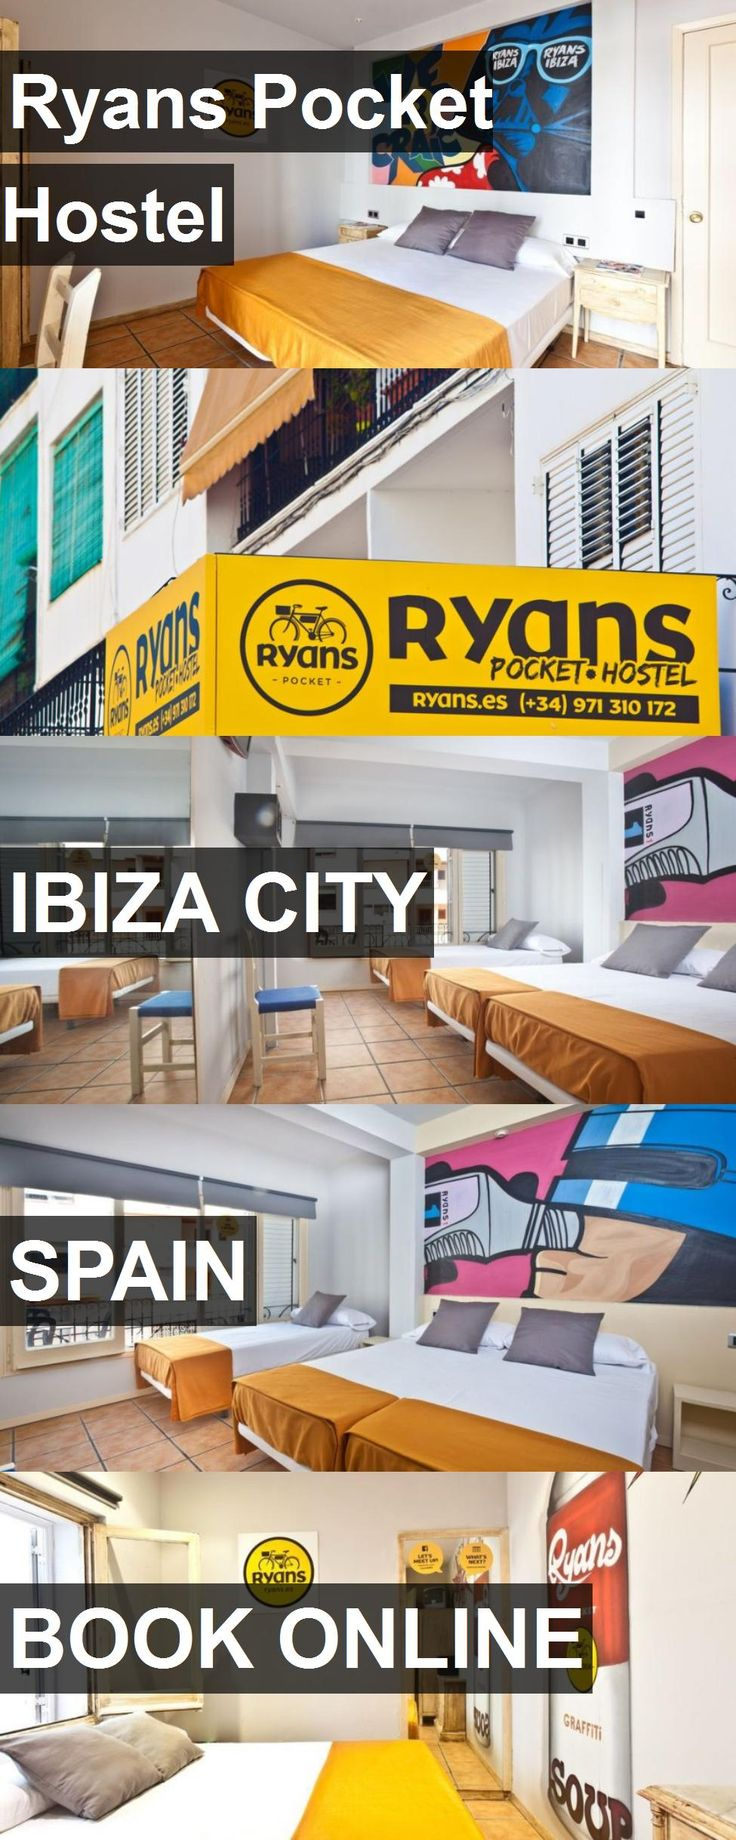 Hotel Ryans Pocket Hostel in Ibiza City, Spain. For more information, photos, reviews and best prices please follow the link. #Spain #IbizaCity #RyansPocketHostel #hotel #travel #vacation